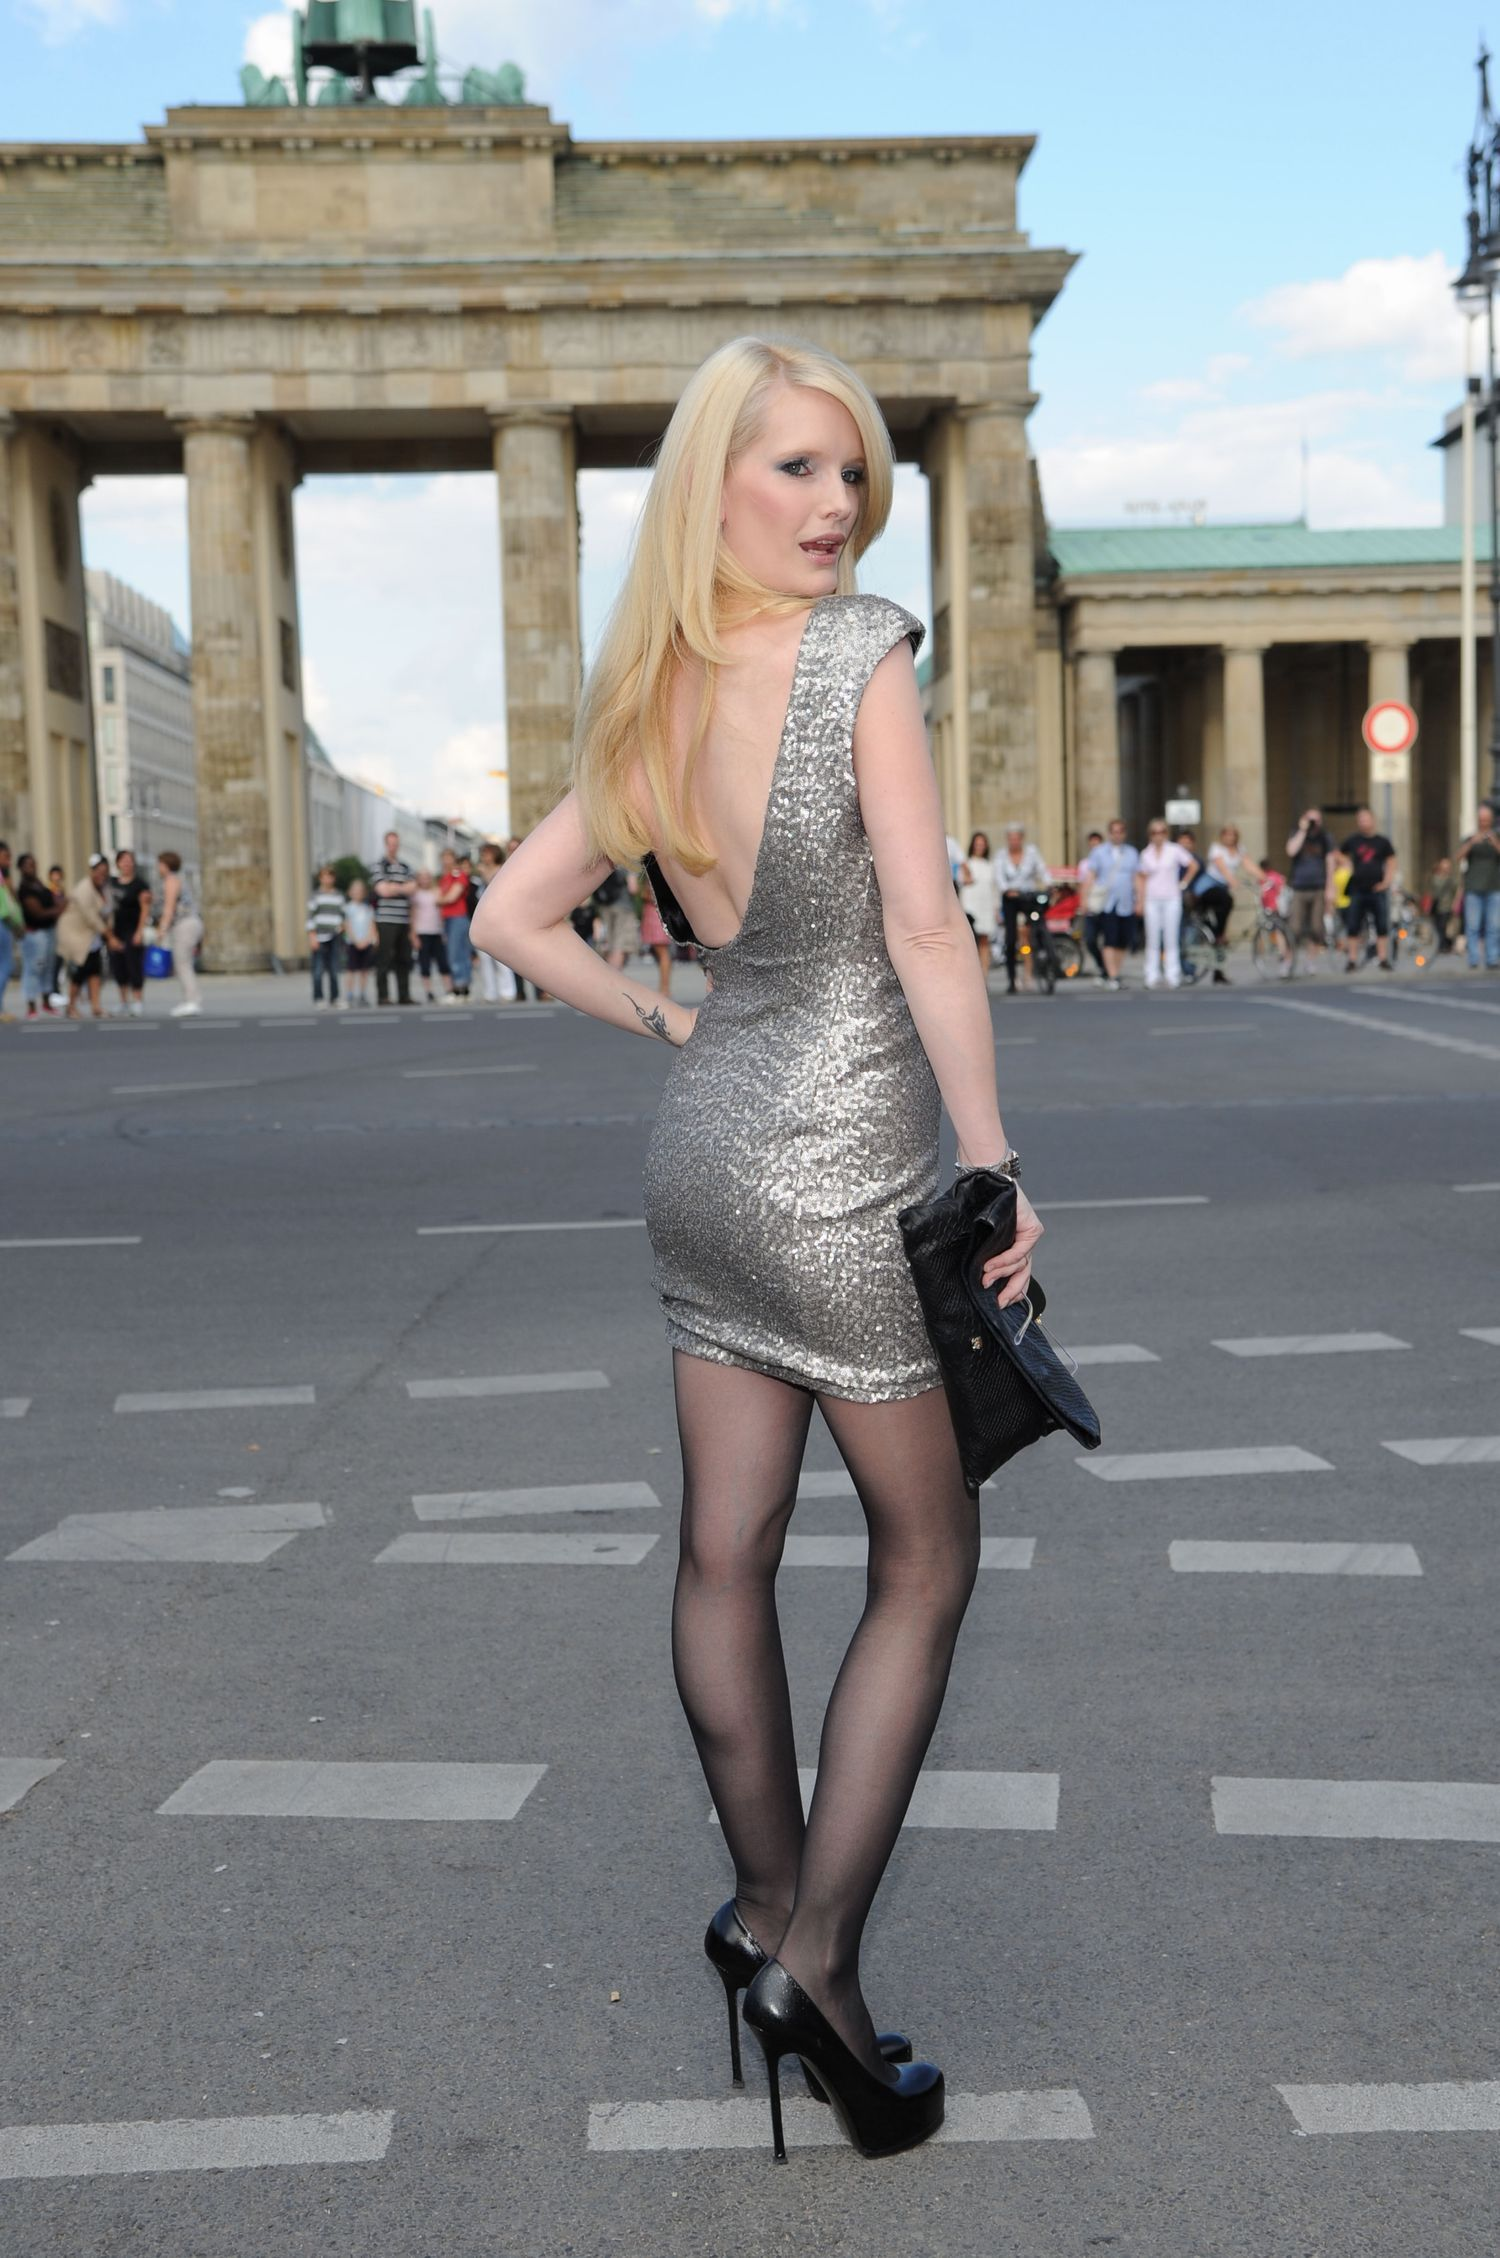 Mirja Du Mont in pantyhose - More pictures here: http